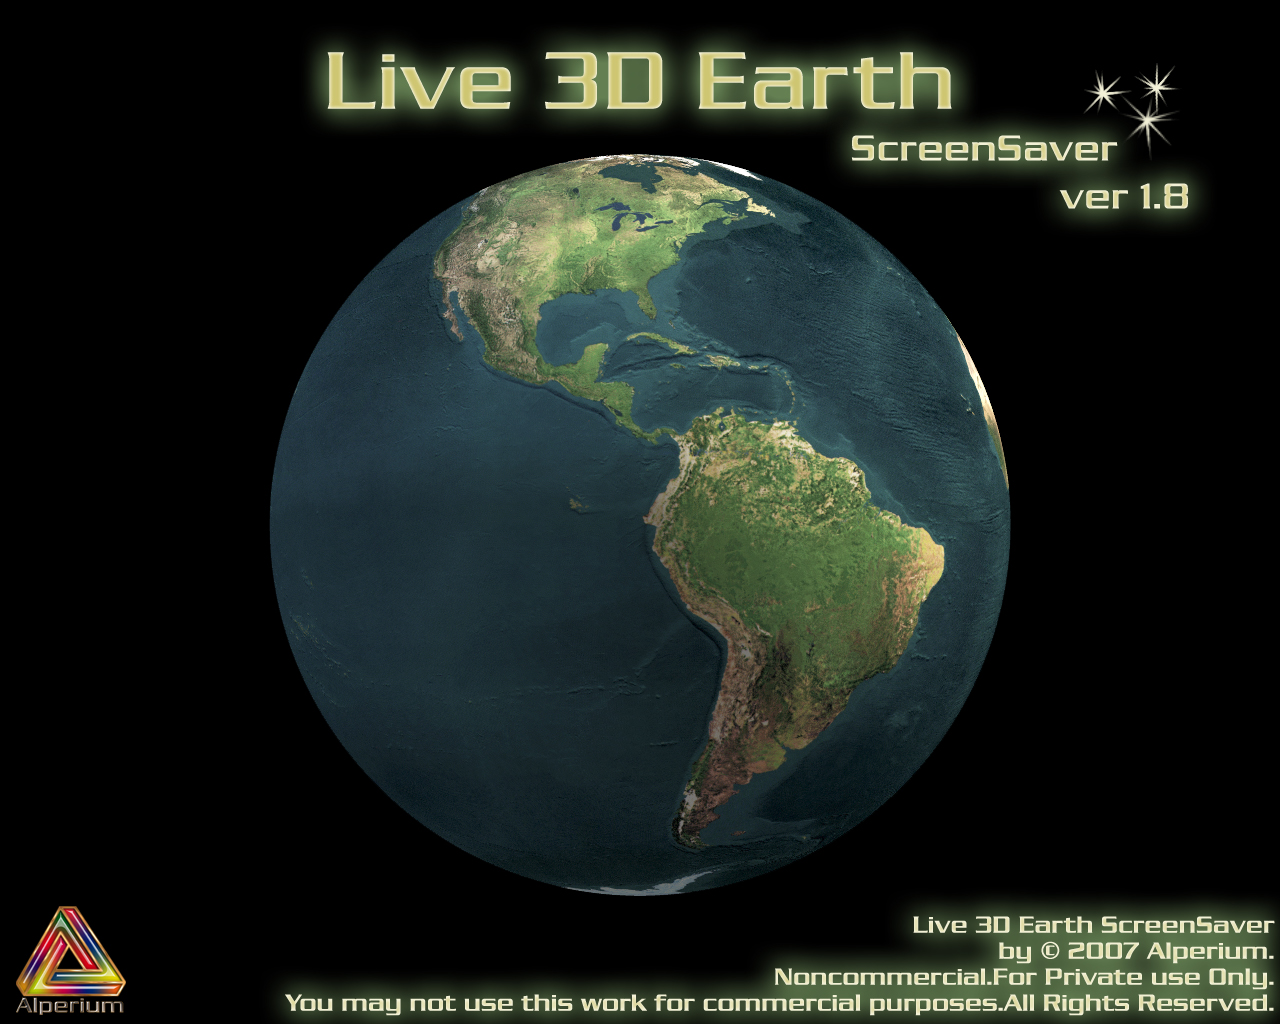 Live 3D Earth 1.8 ScreenSaver by klen70